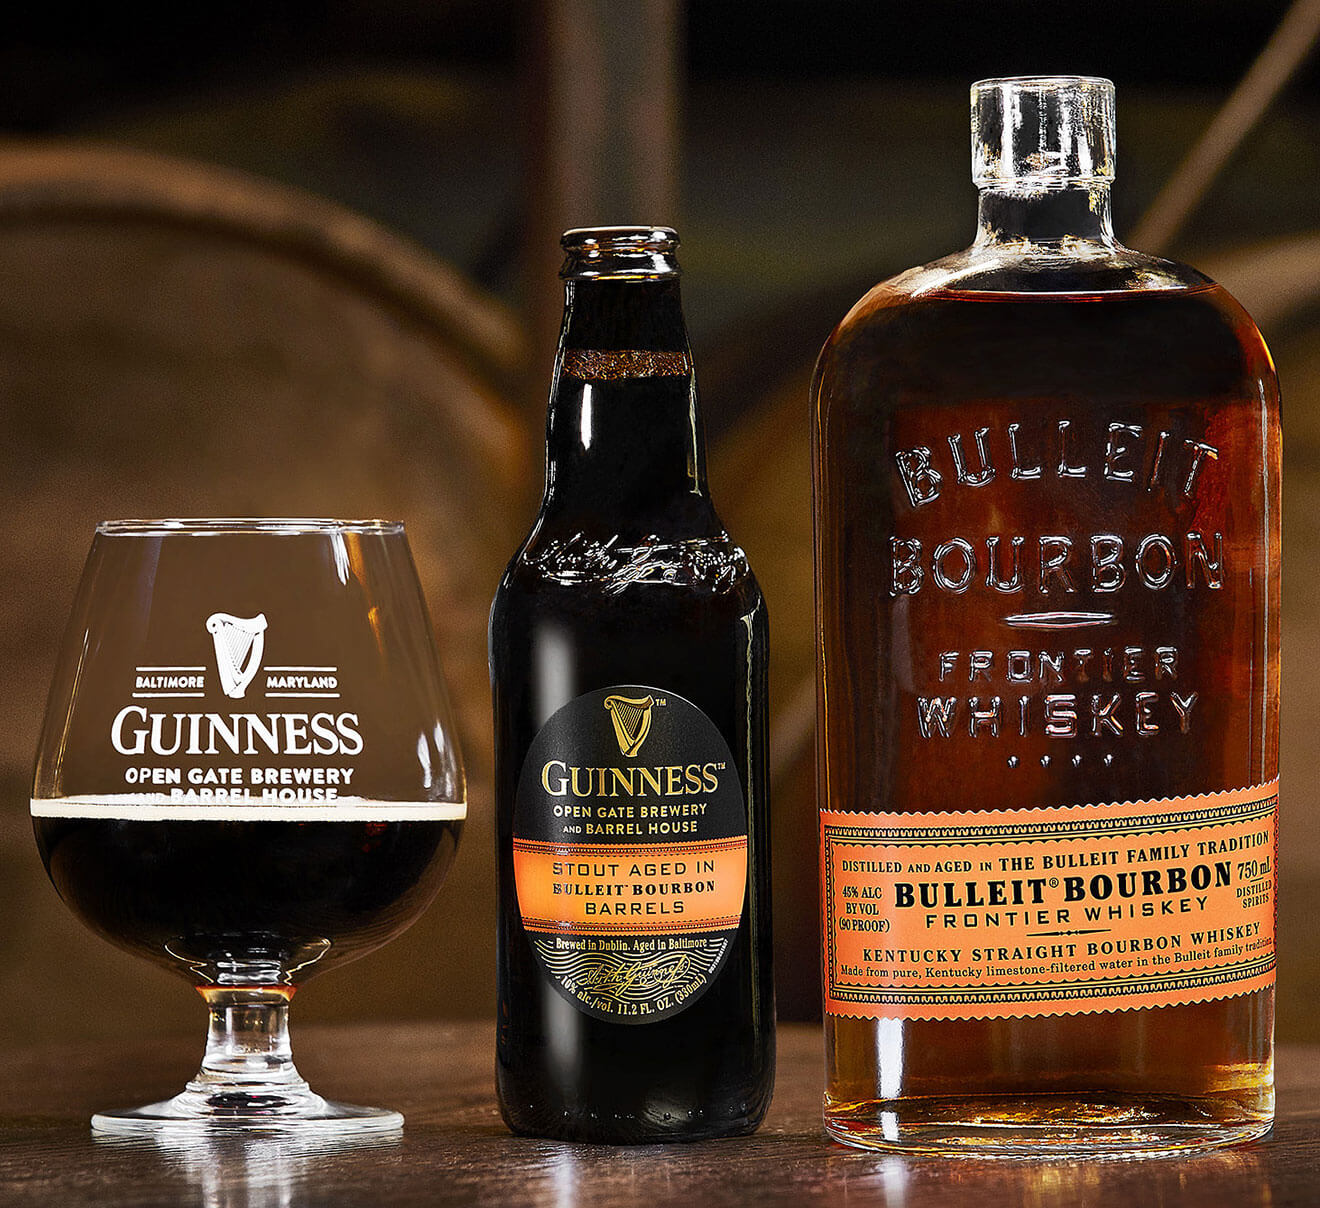 Guinness Barrel-Aged Beer Aged in Bulleit Bourbon Barrels, glass, bottle and bourbon bottle, barrels room